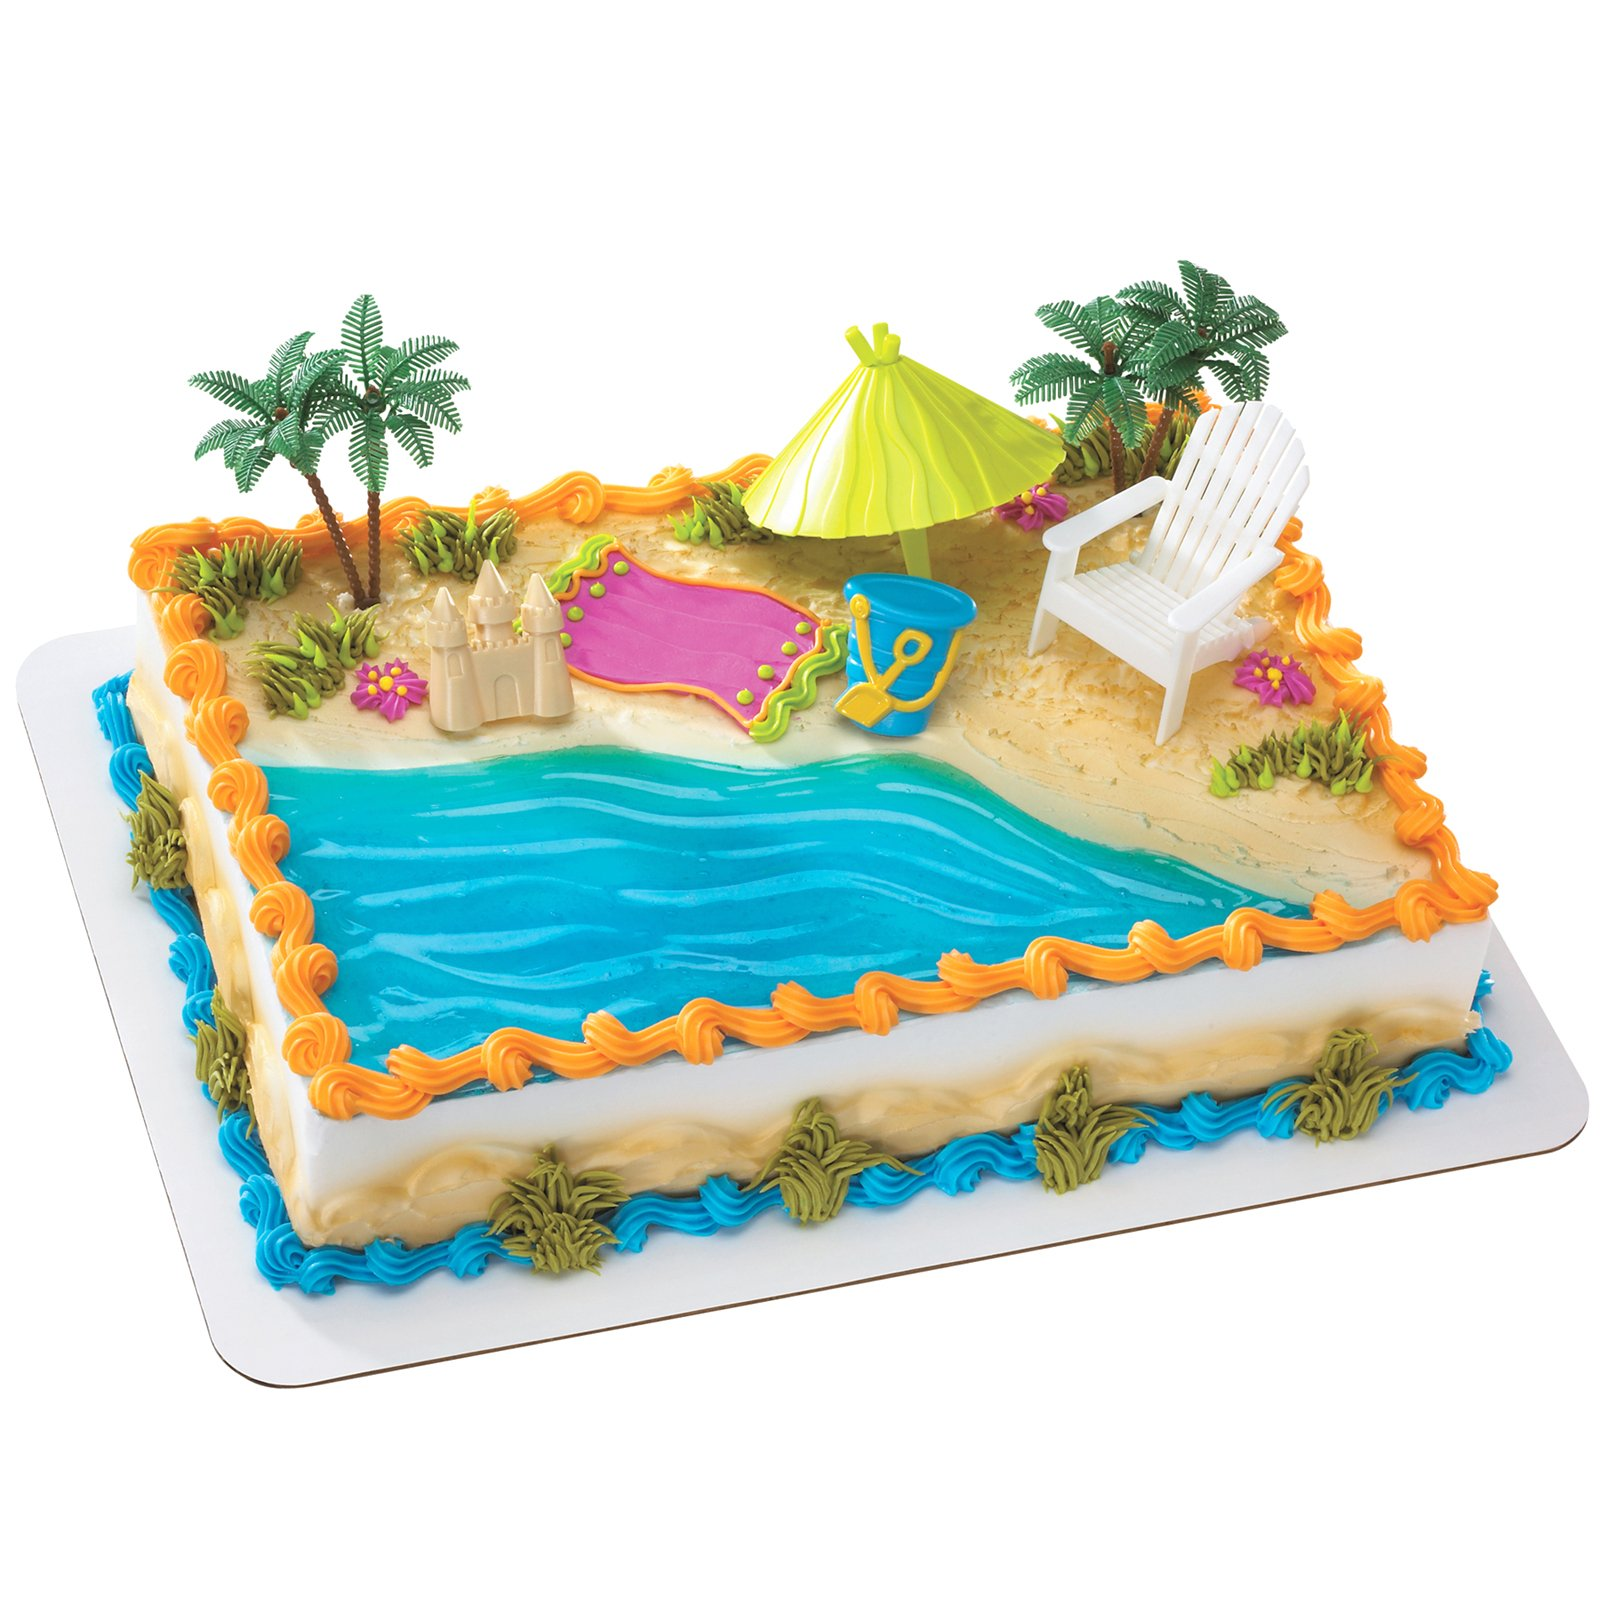 Cake Decorations For Birthday Party : Celebrate Summer Birthdays with Birthdayexpress.com